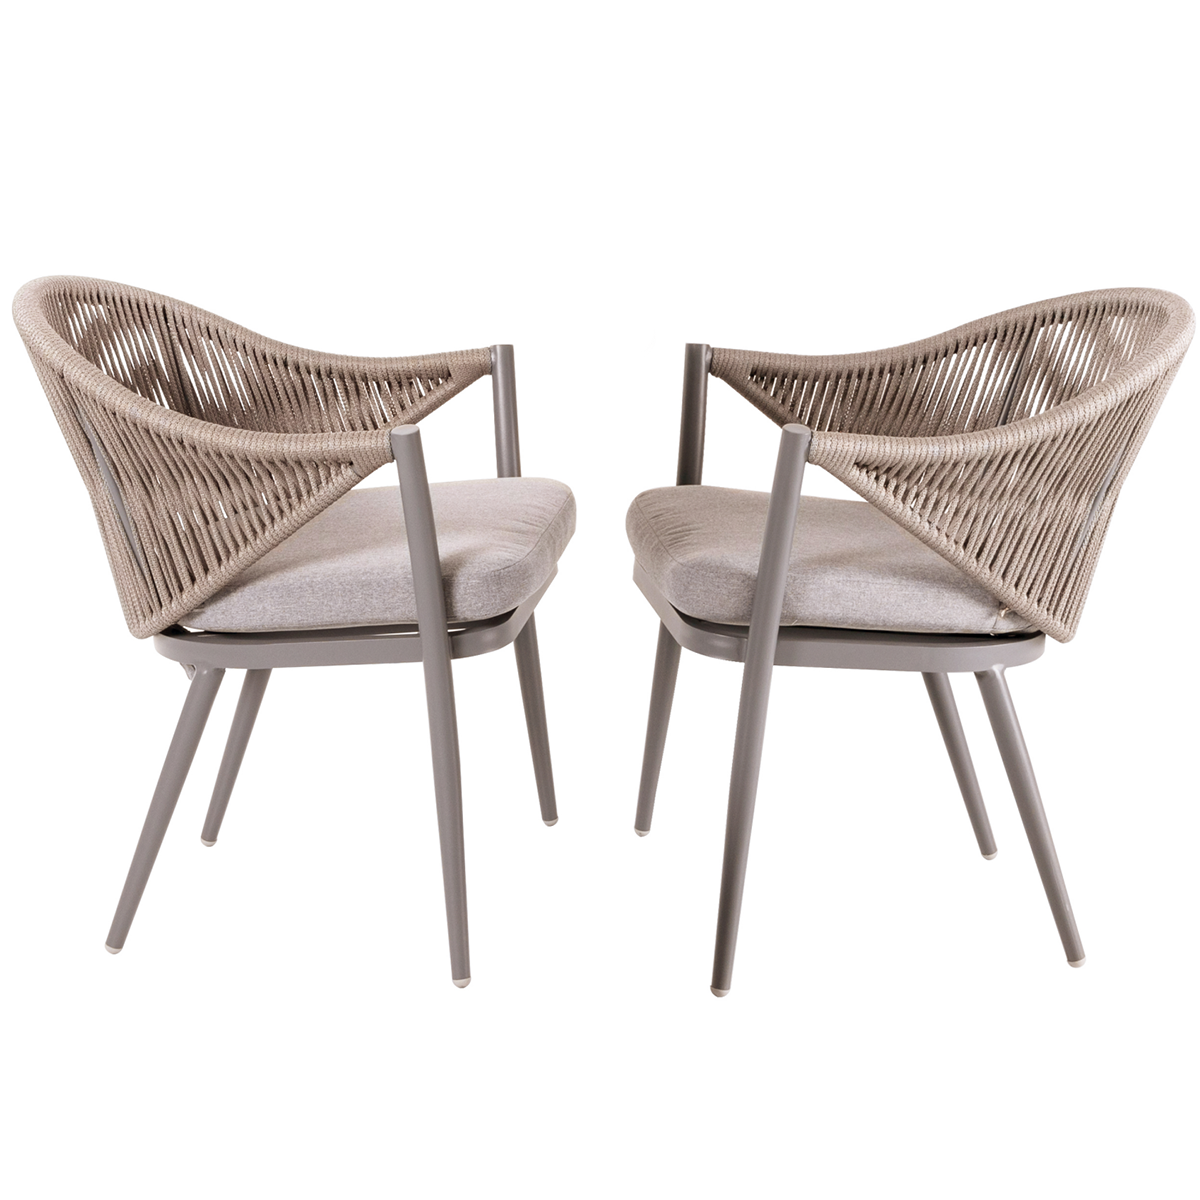 Aluminum Woven Rope Outdoor Furniture Dining Chair With Beige Cushions Set Of 2 Ebay